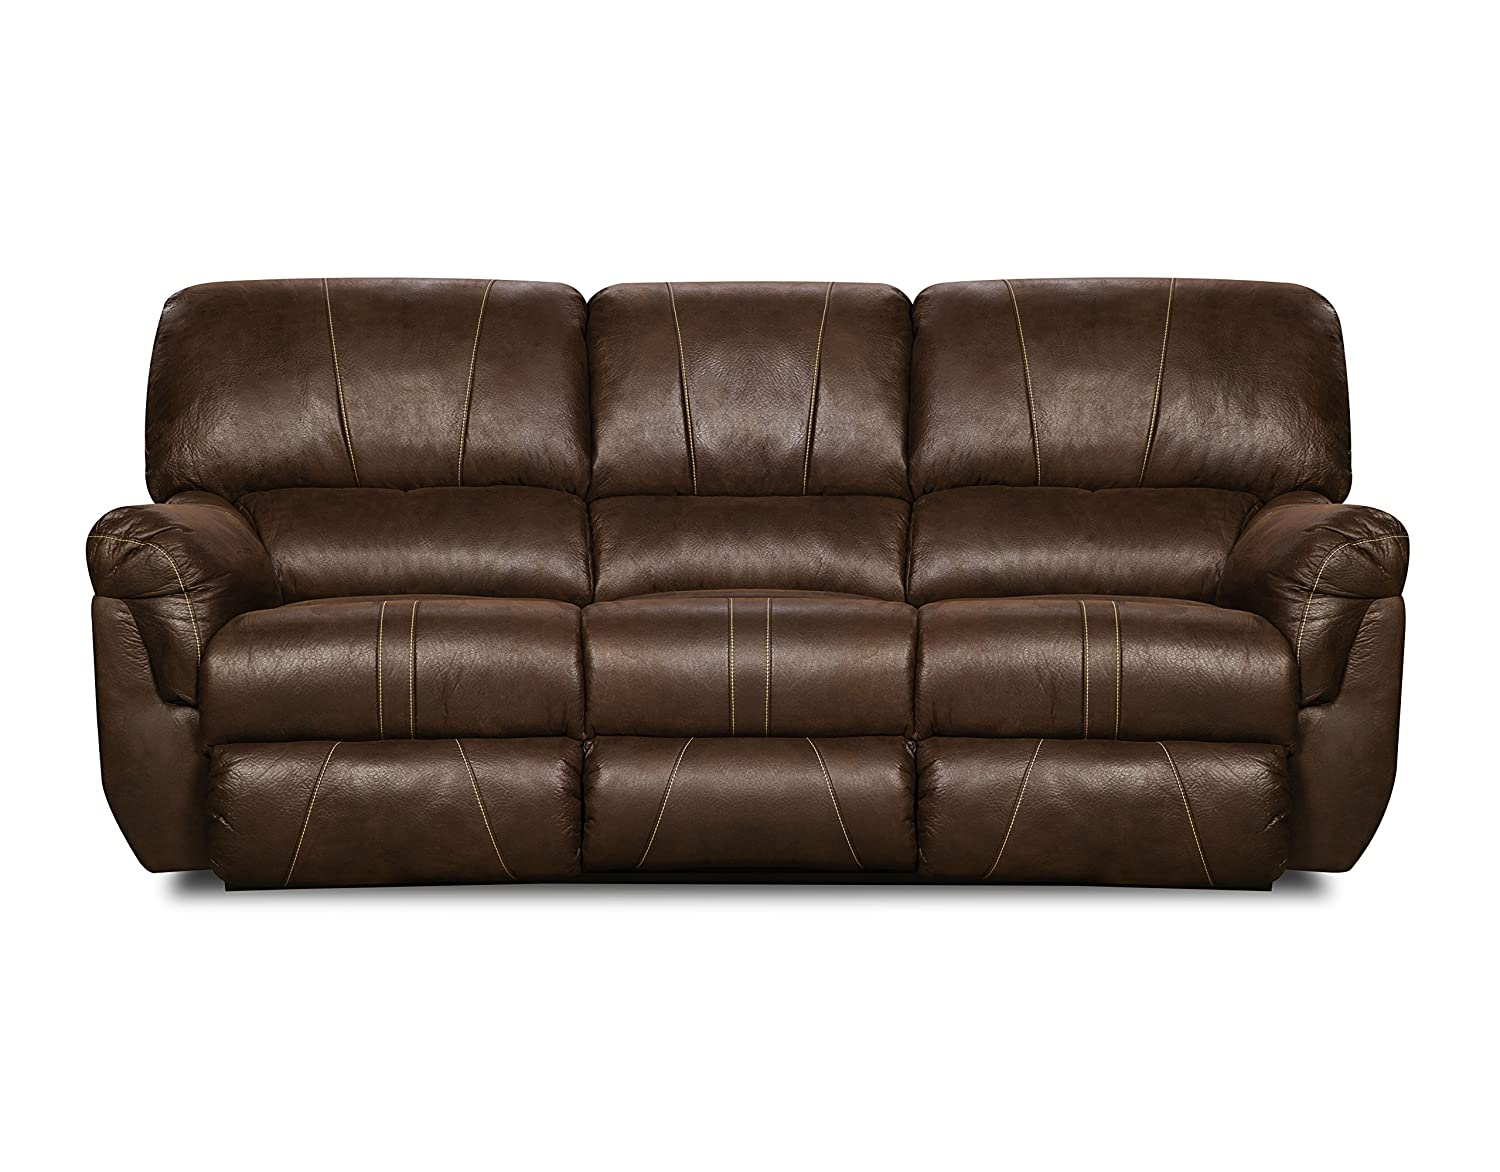 Swell Simmons Upholstery Renegade Beauty Rest Motion Sofa Mocha Pabps2019 Chair Design Images Pabps2019Com